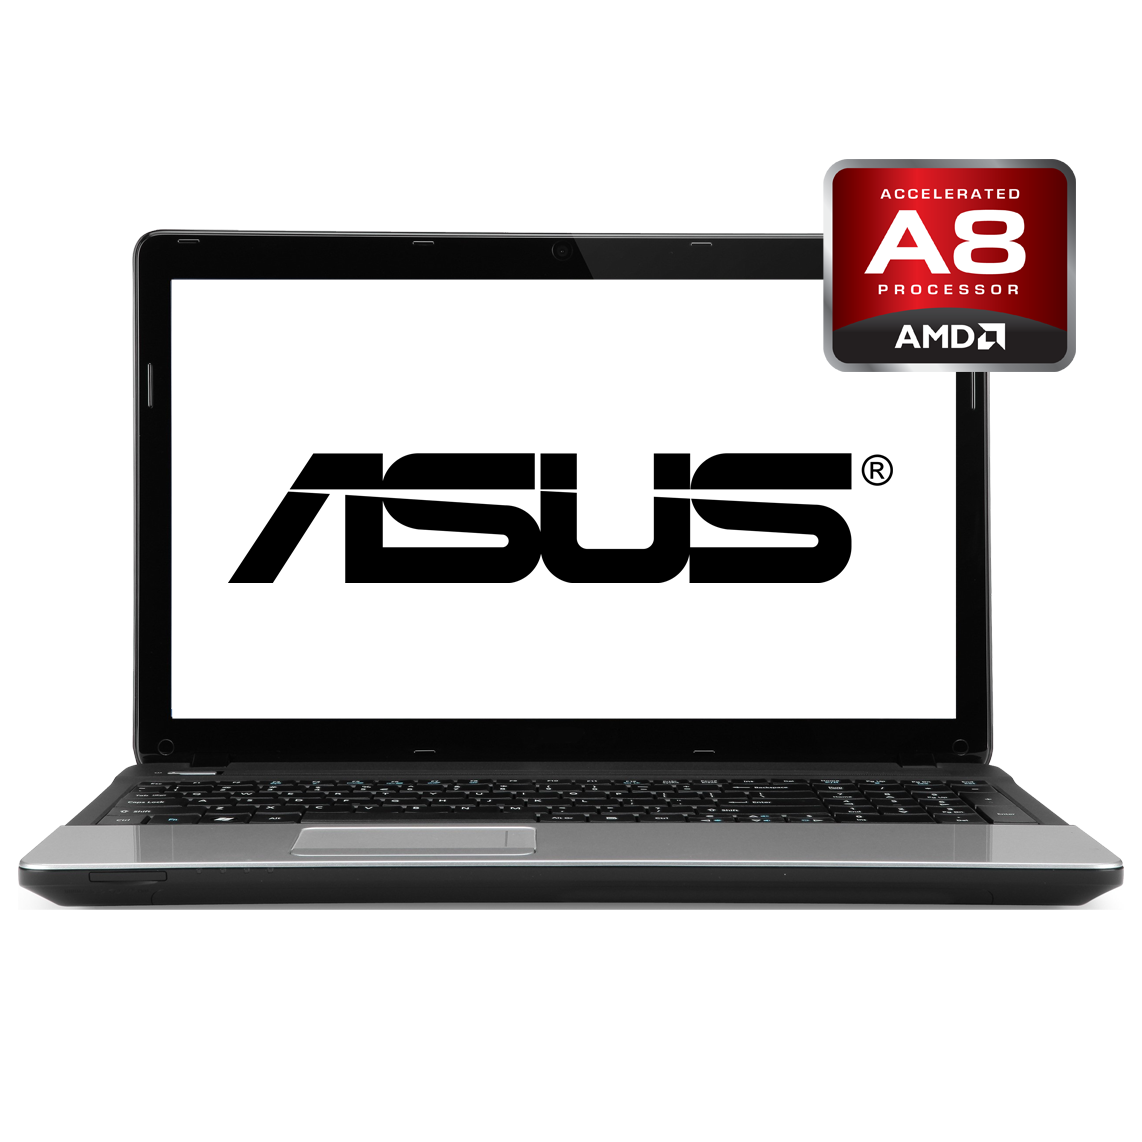 ASUS - 17.3 inch AMD A8